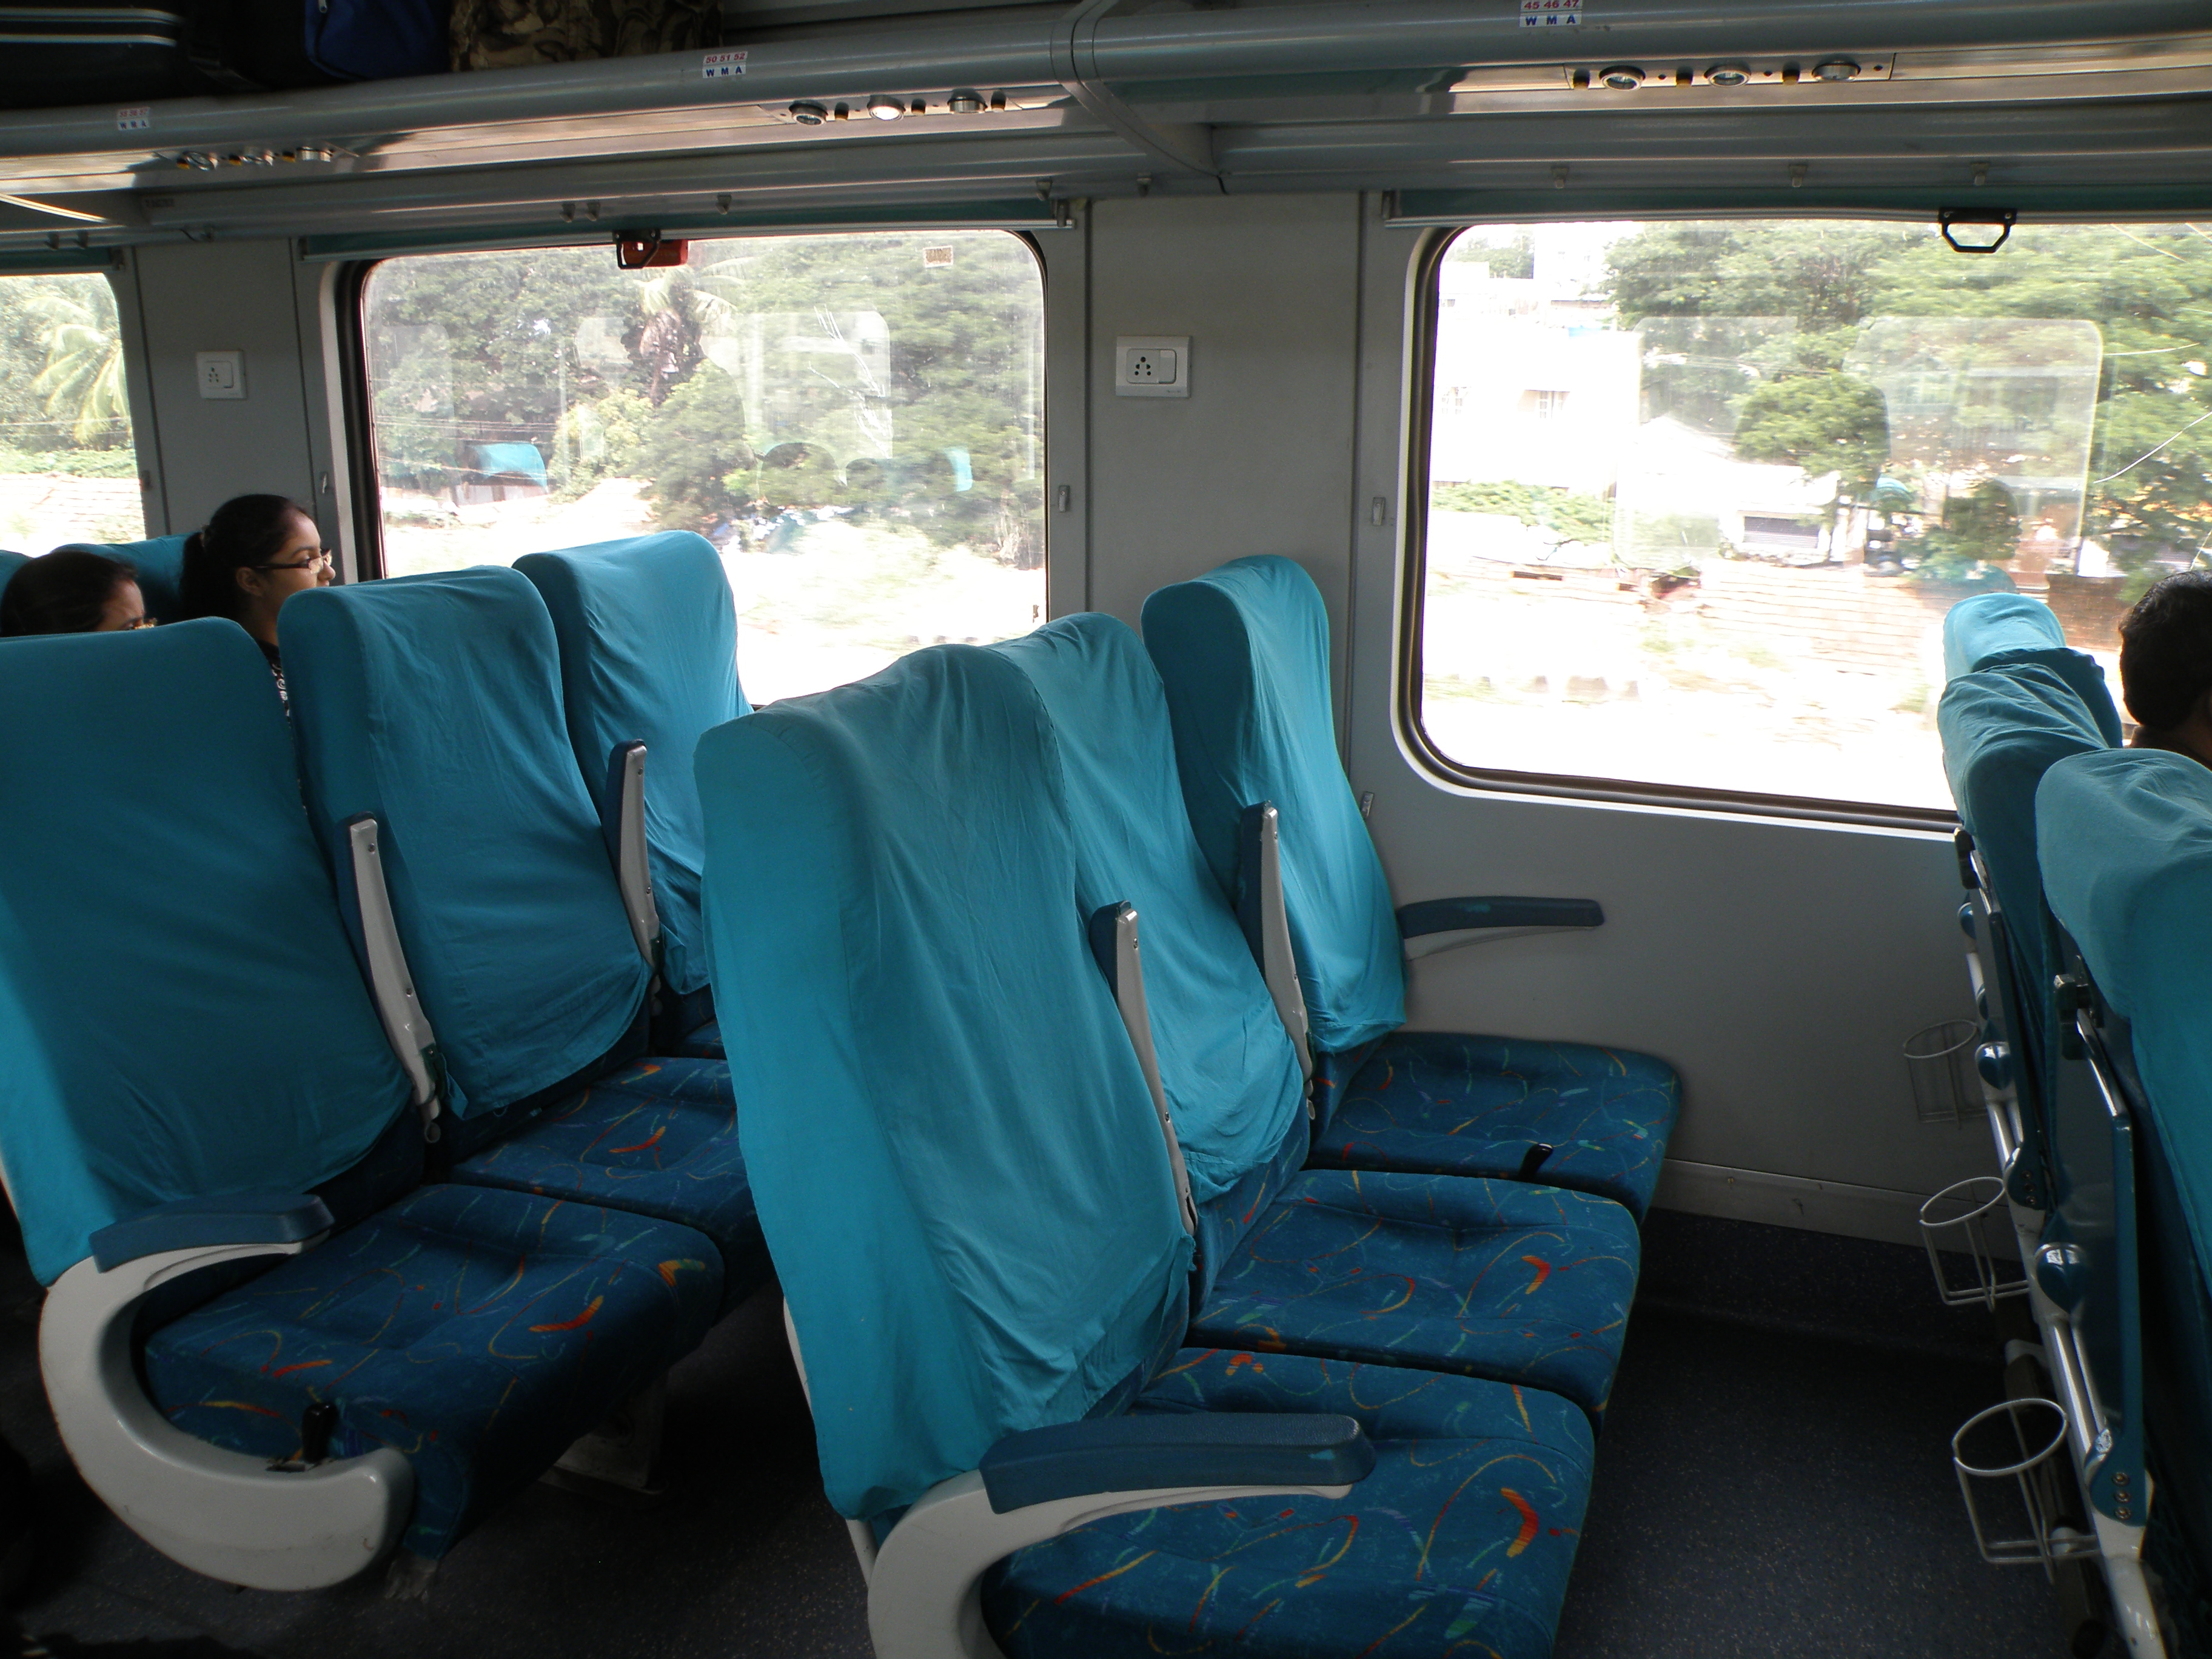 Chair Rail Wiki Part - 49: JPG Source: Http://upload.wikimedia.org/wikipedia /commons/d/de/CC_class_seats_in_